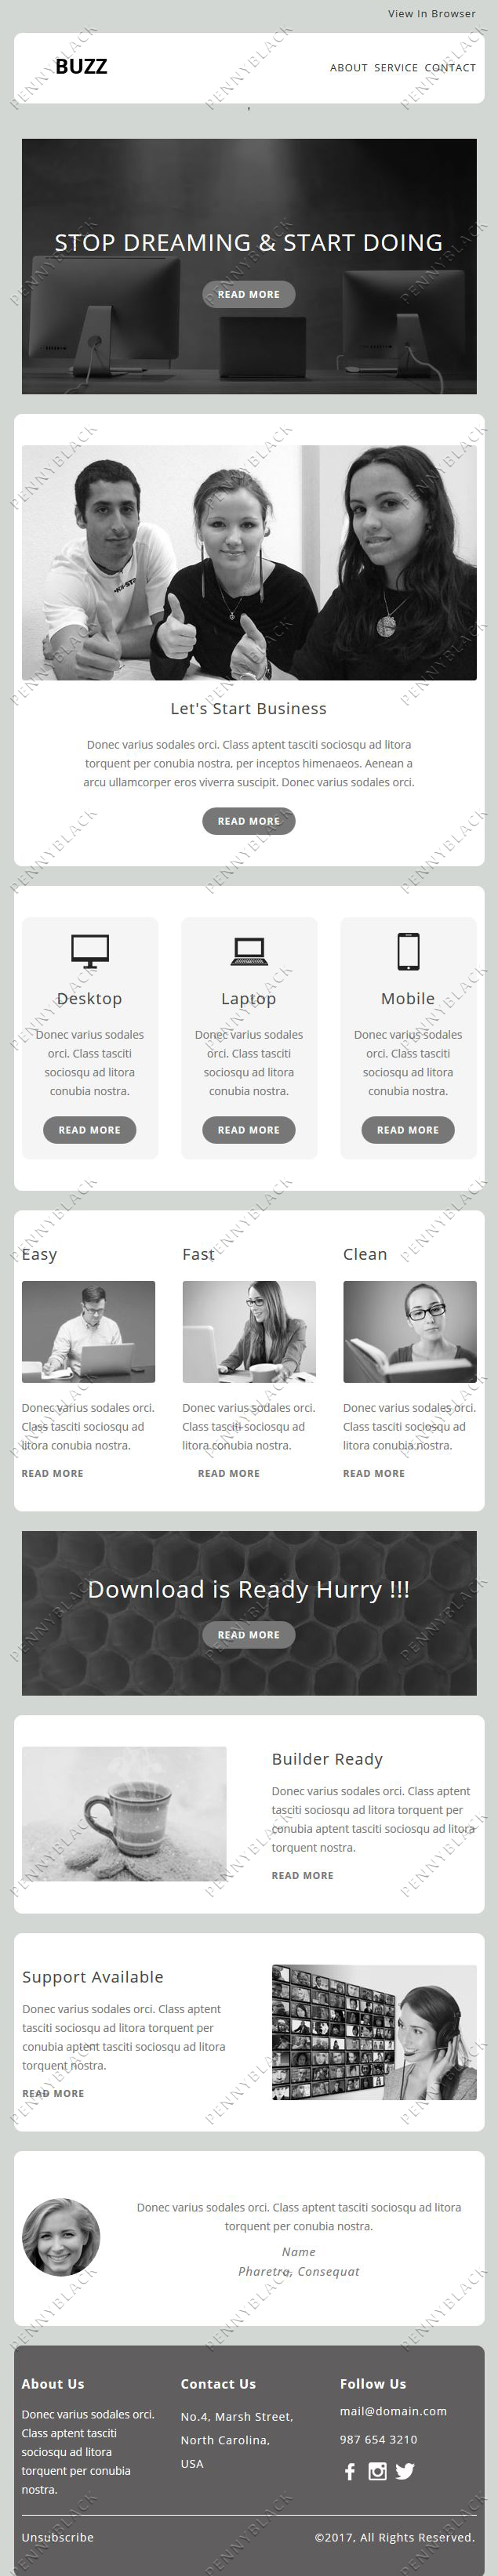 Buzz - Responsive Email Template